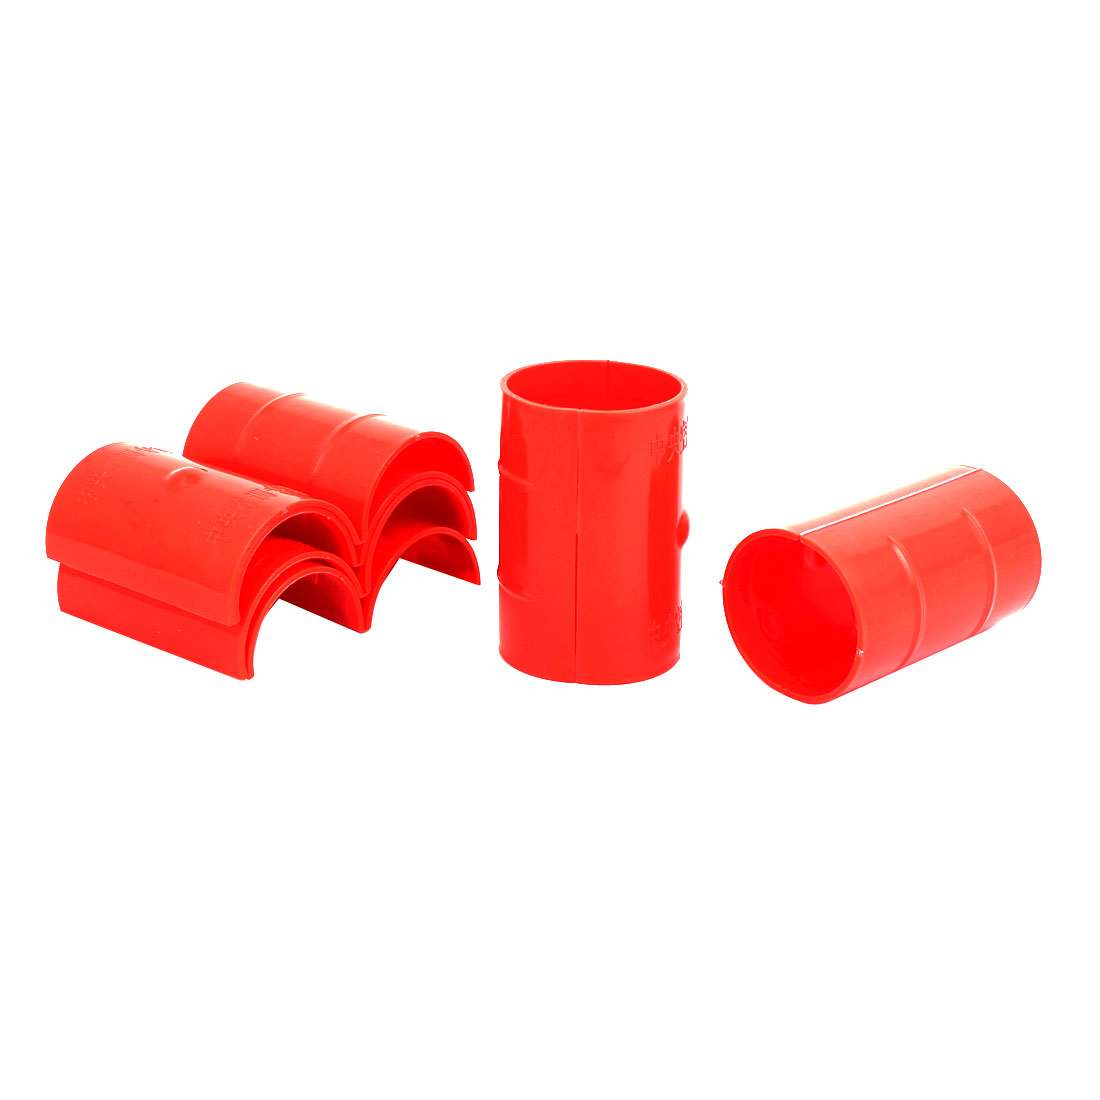 50mm Dia 2mm Thickness Central Air Conditioning Pipe Tube Clamp Red 6pcs